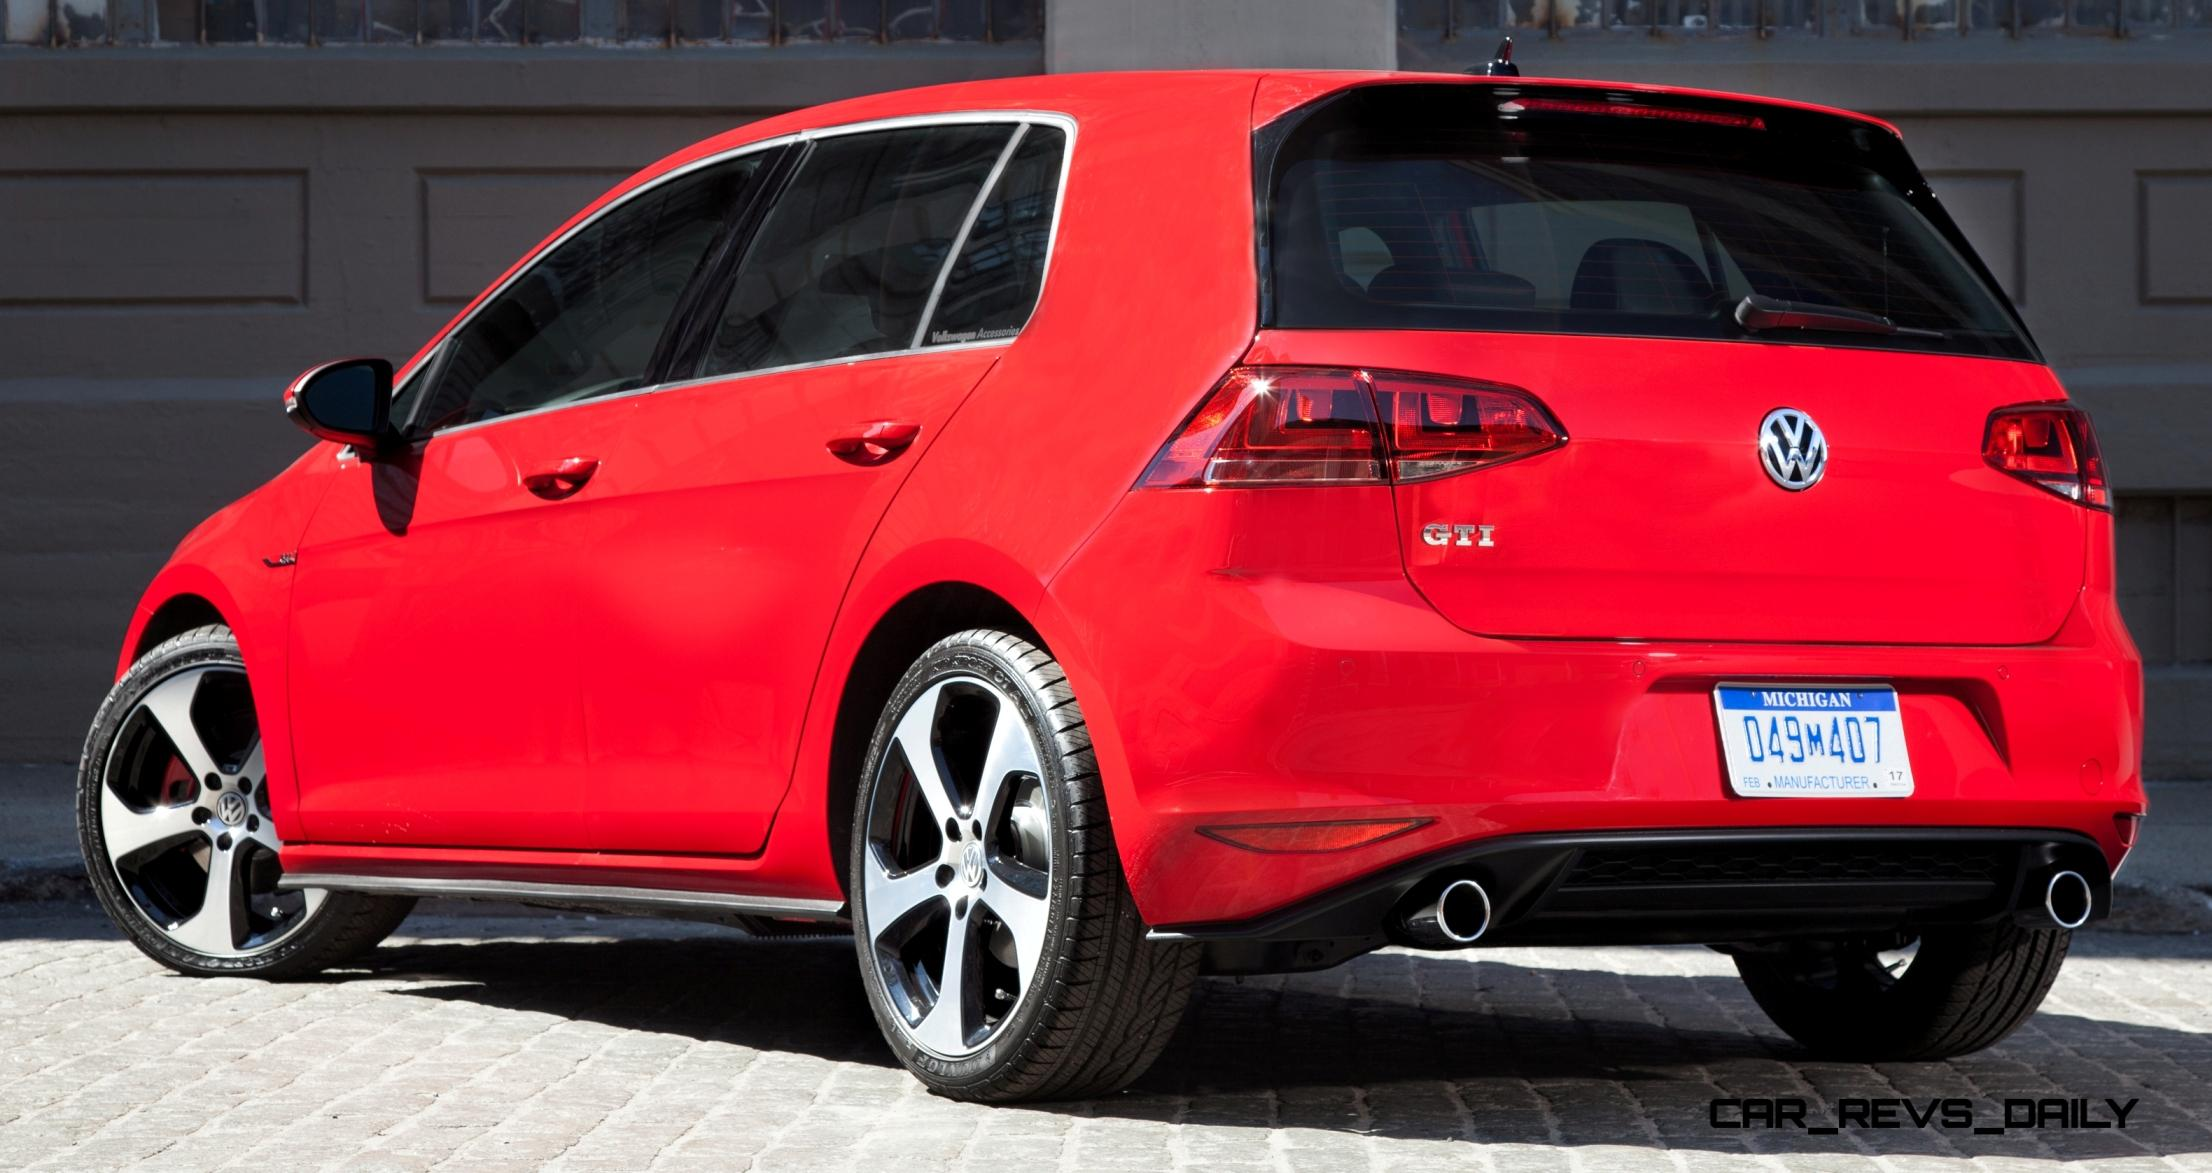 2015 Vw Gti Is In The Usa Pricing For 2 Door Gti Se And 4